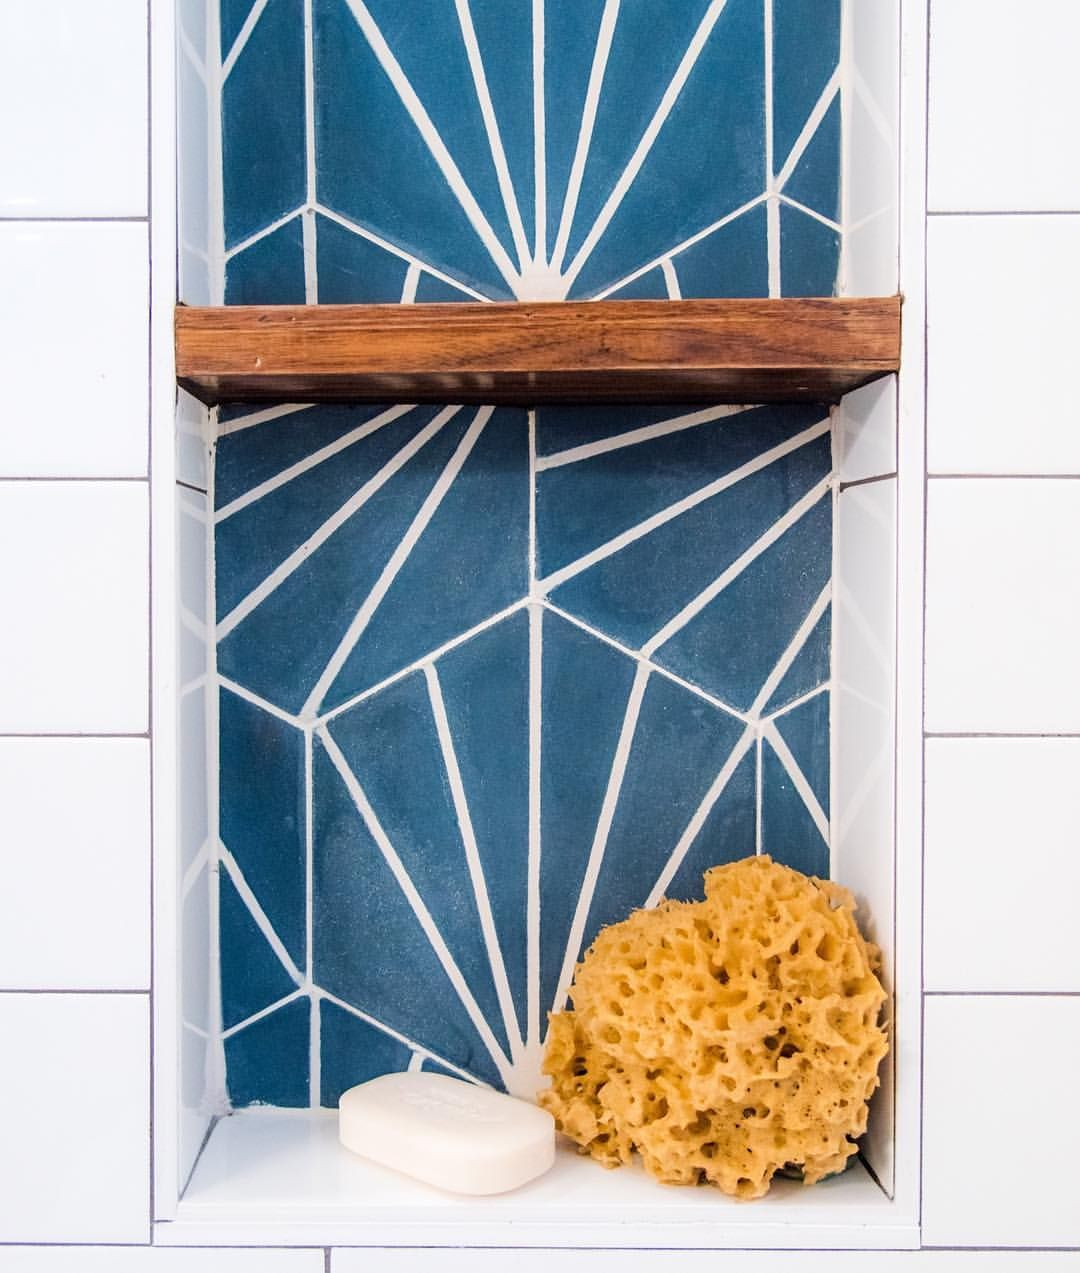 Pop of color! . . . While I wait for the cement tile samples to arrive from @cletile for our #modernmountainhome, I'm posting some inspirational photos. . . . Check out this radar hex in federal blue and white @thehappyvesta